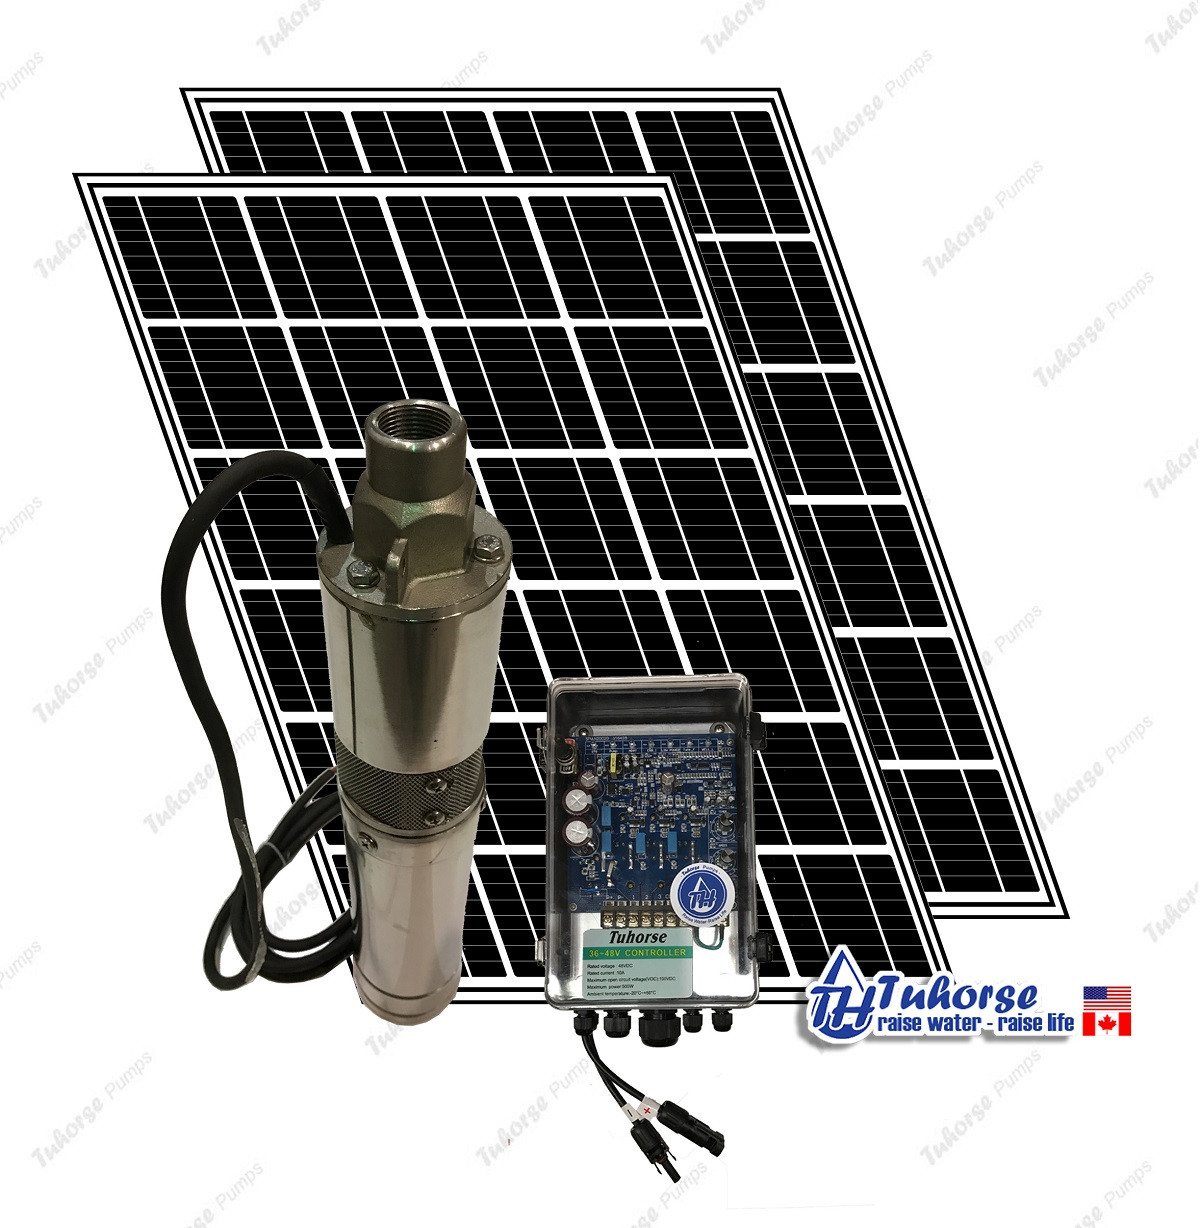 medium resolution of 3 500w solar submersible deep well pump 560w solar panel 120 feet cable complete kit